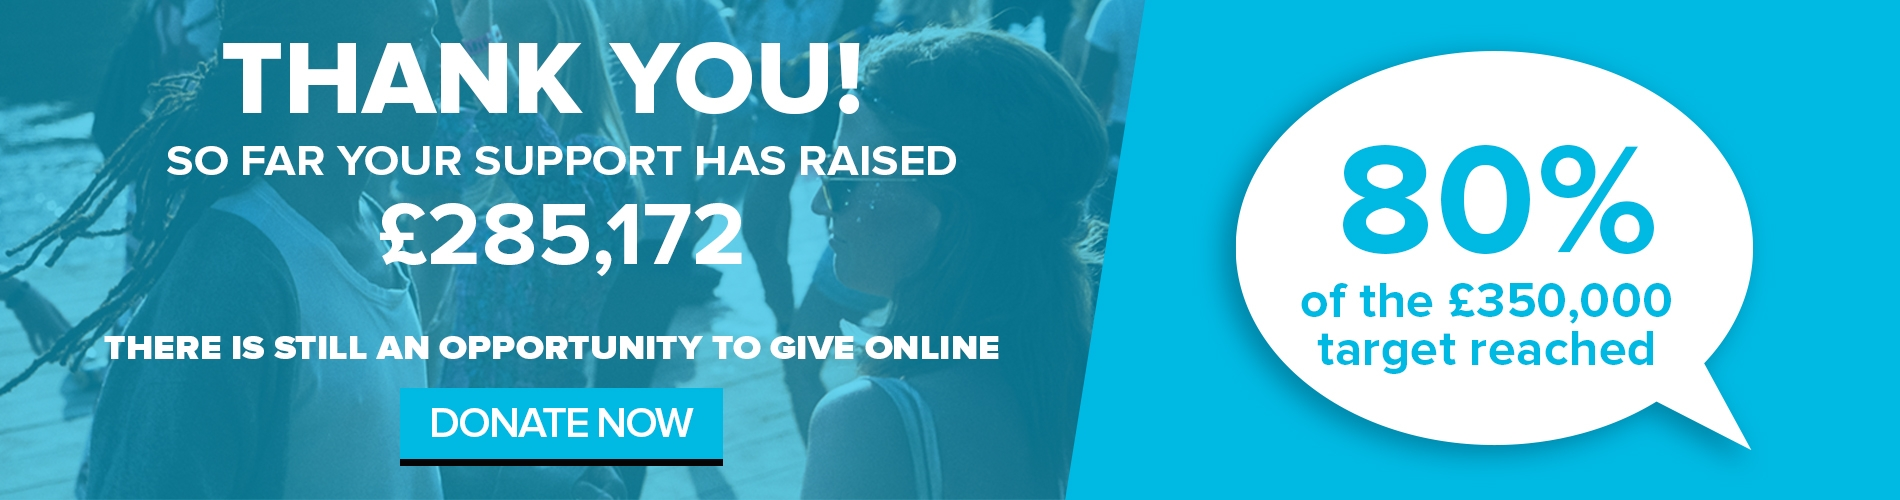 80% of the £350,000 target reached